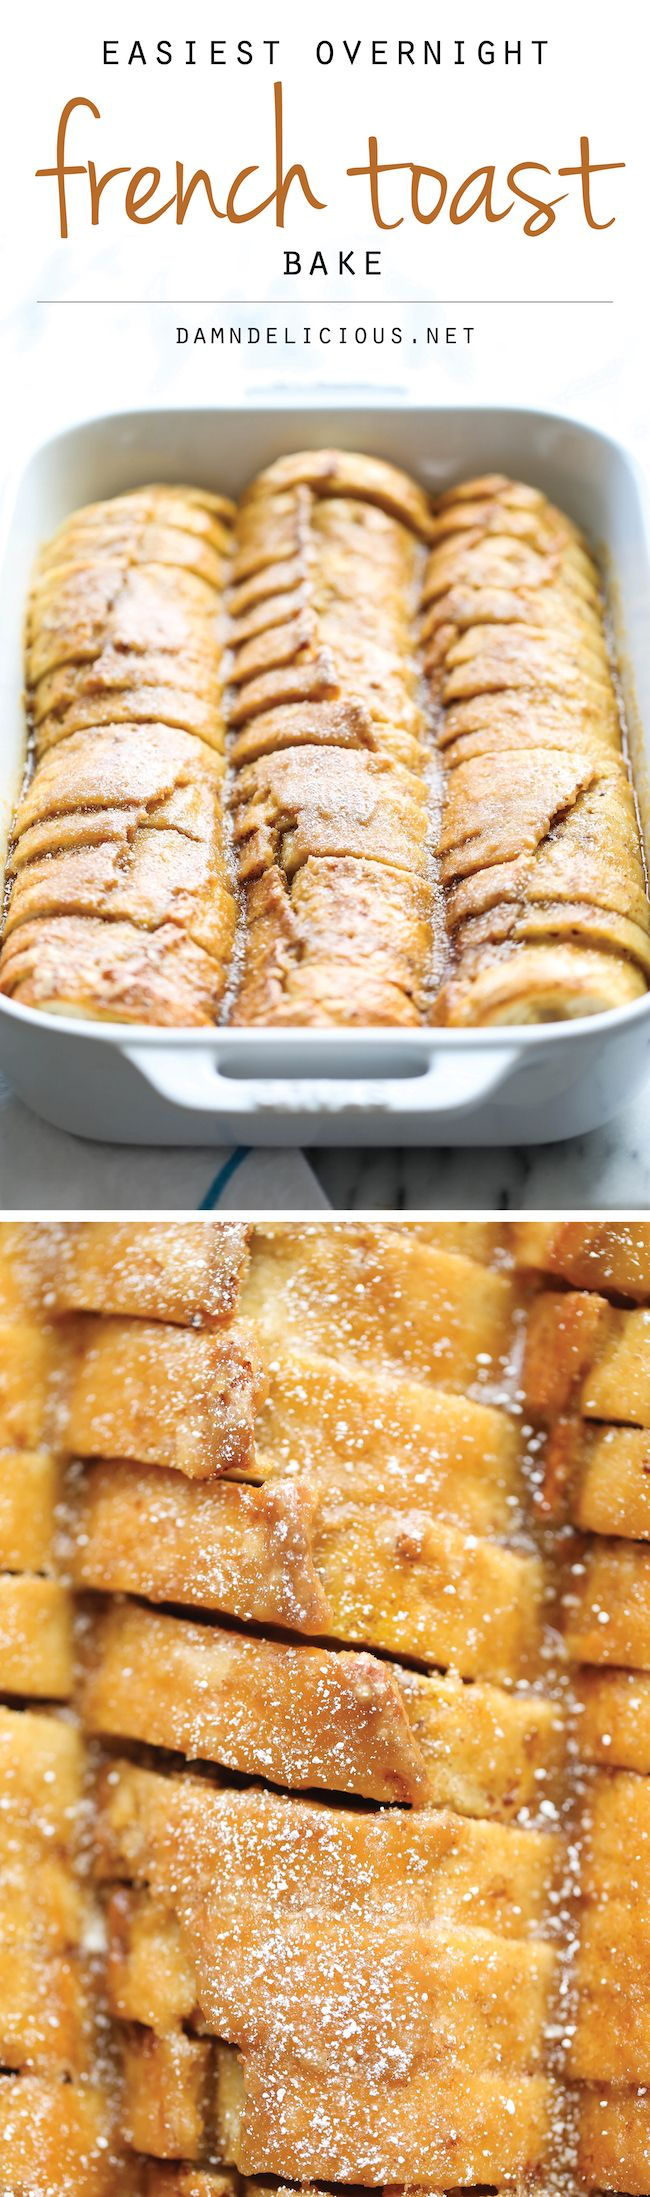 buy tiger shoes online uk Easiest Overnight French Toast Bake   You can easily prep this the night before in only 10 min  Then just pop it in the oven right before serving  So easy